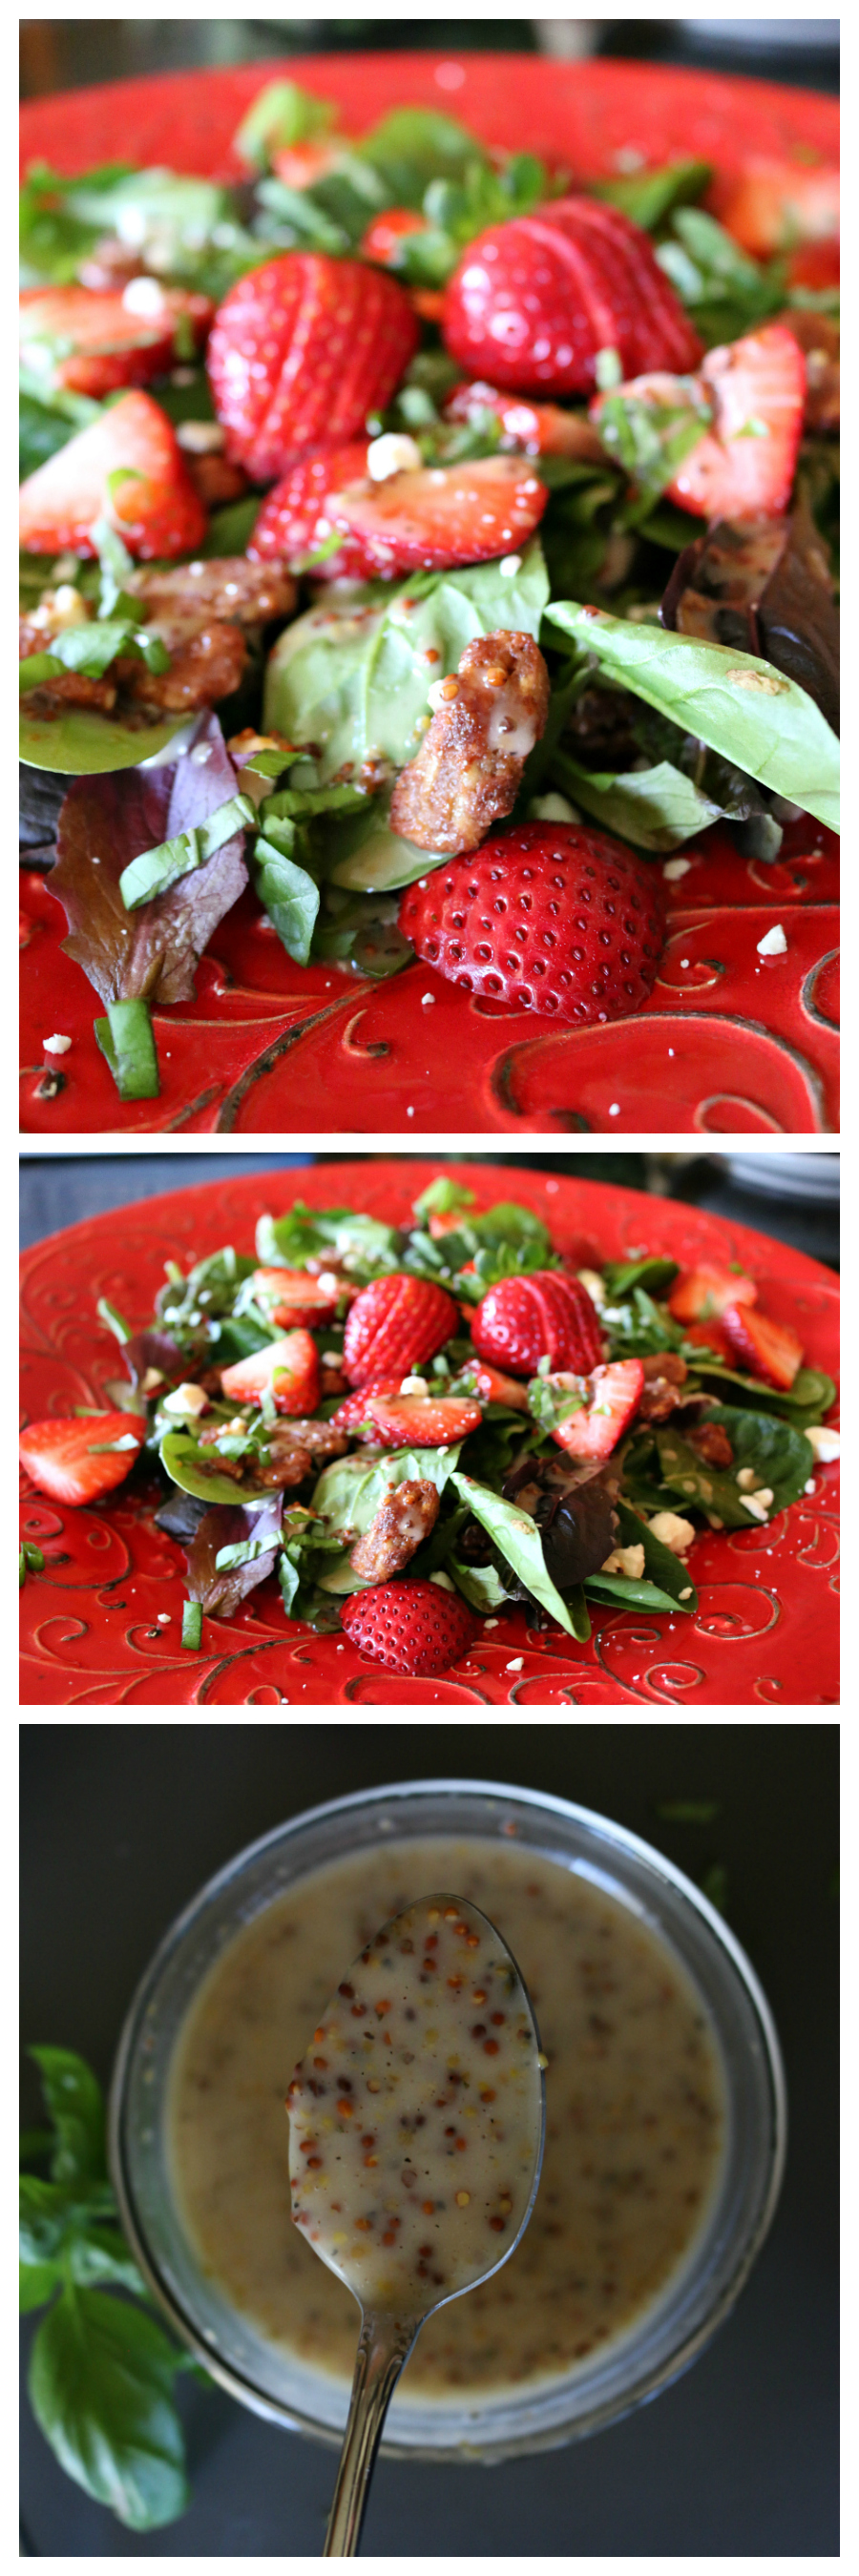 Strawberry Spinach Salad with Honey Dijon Mustard Dressing